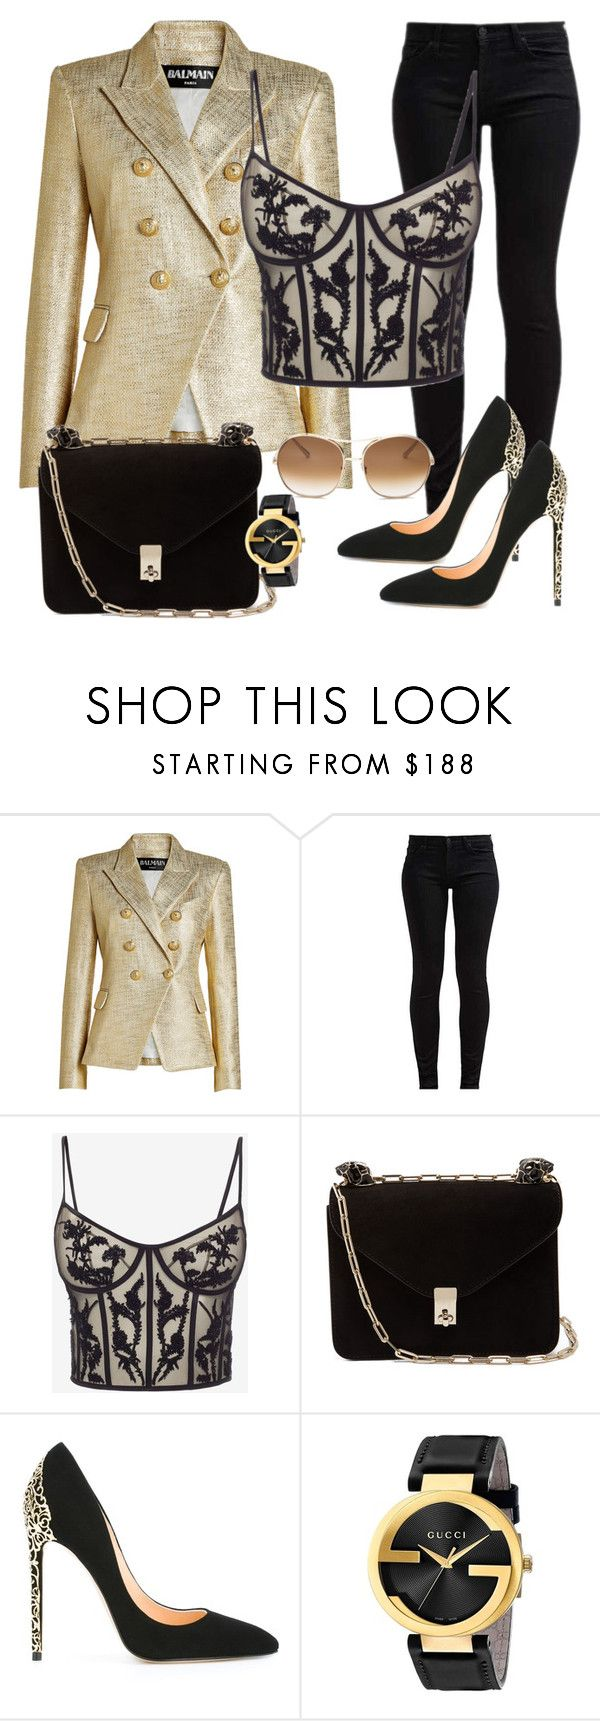 """""""Party"""" by chrissy-50 ❤ liked on Polyvore featuring Balmain, 7 For All Mankind, Alexander McQueen, Valentino, Cerasella Milano, Gucci and Chloé"""